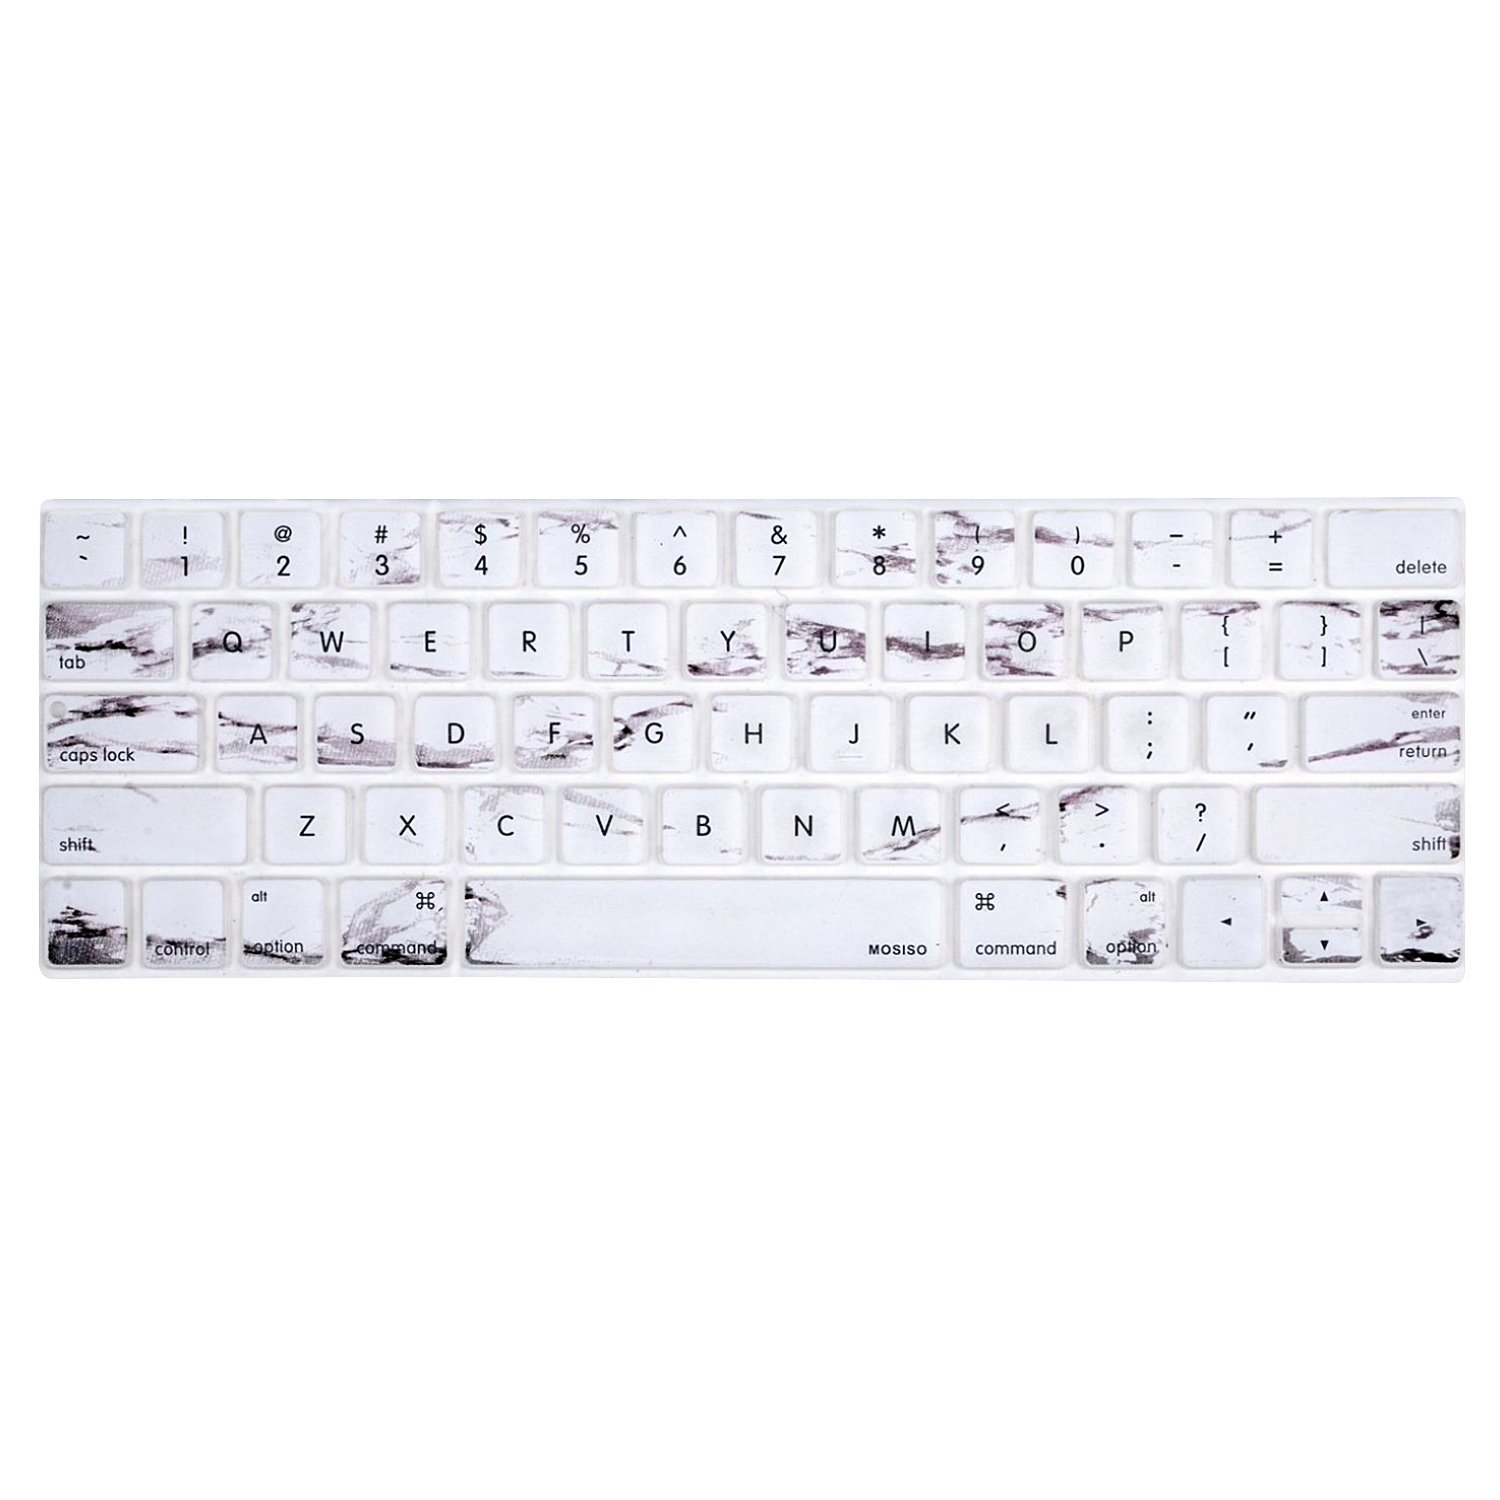 Mosisoキーボードカバーfor Touchバーモデル最新バージョンMacbook Pro FBA_MO-KC-NEW-MBP13-NTB-Marble B01N9H530Z ホワイトマーブル